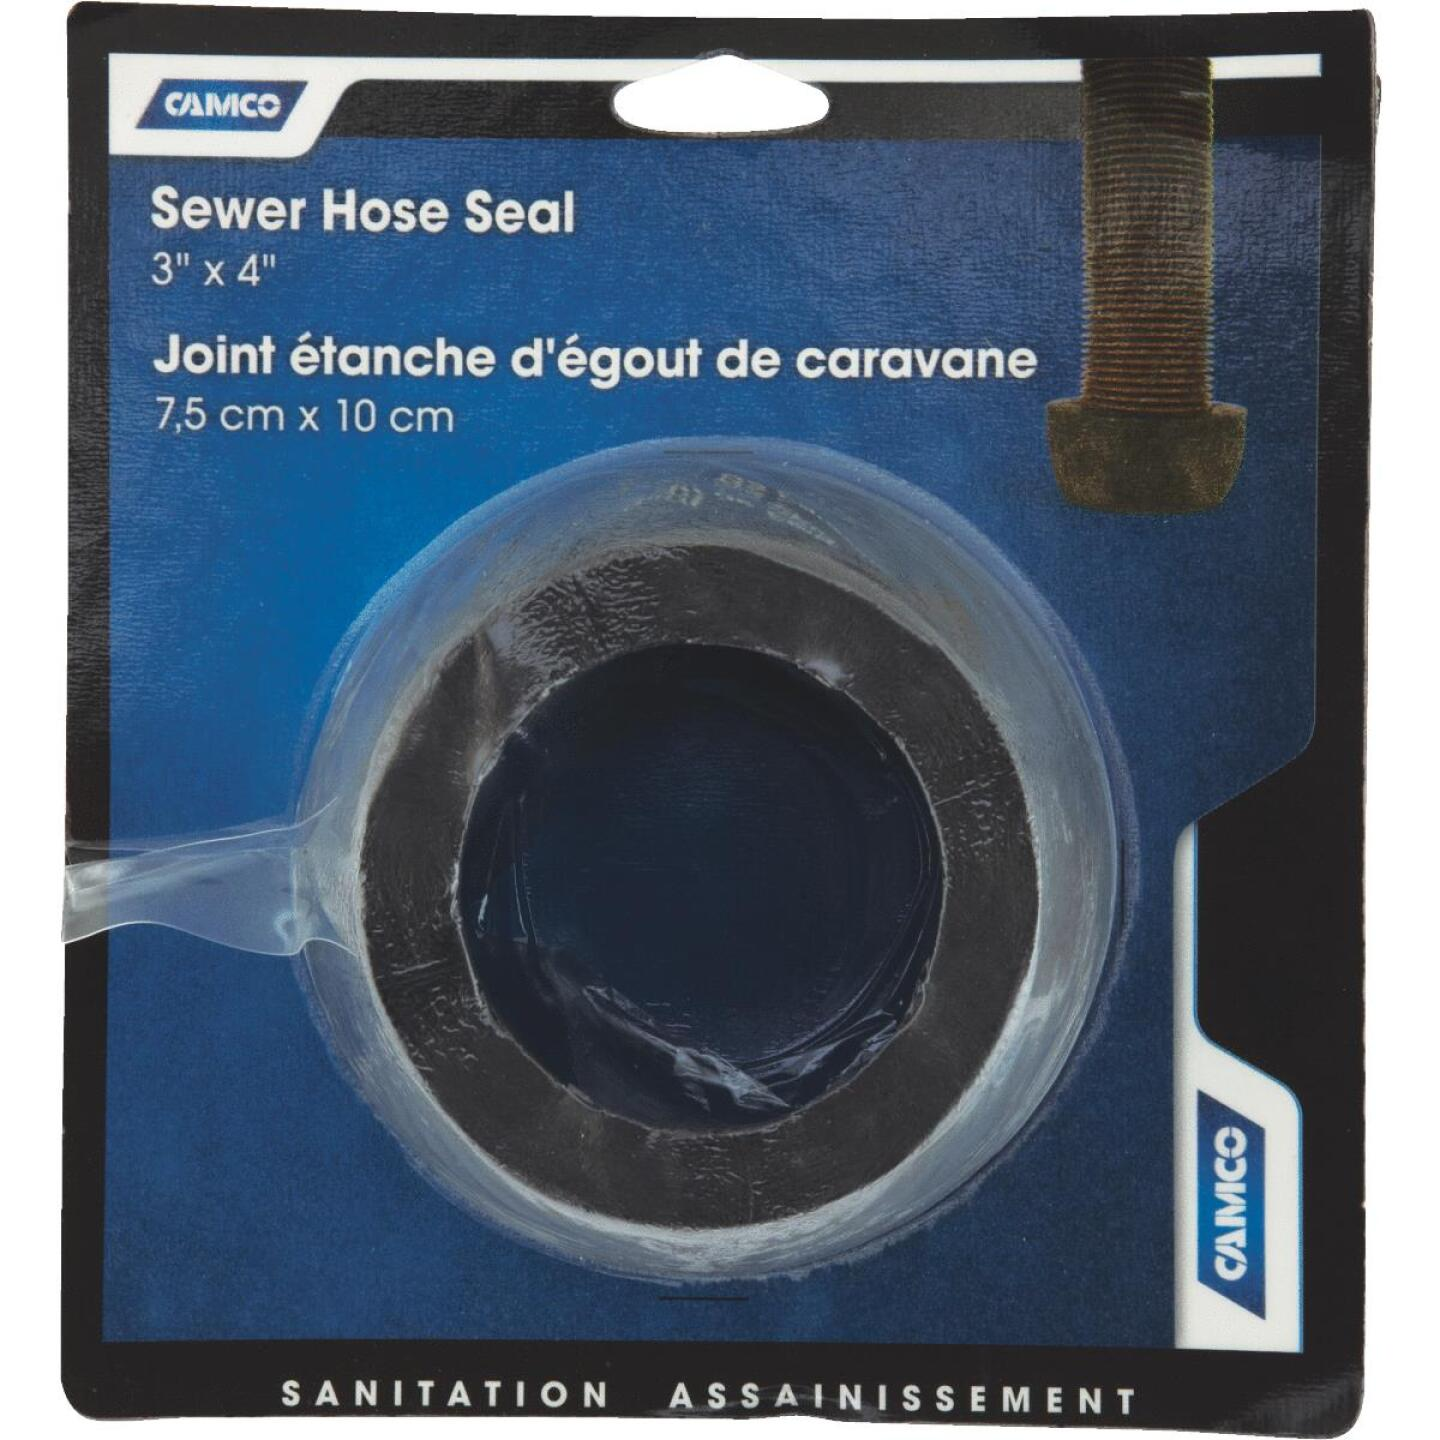 Camco 4 In X 3 In Rv Sewer Hose Adapter Do It Best World S Largest Hardware Store